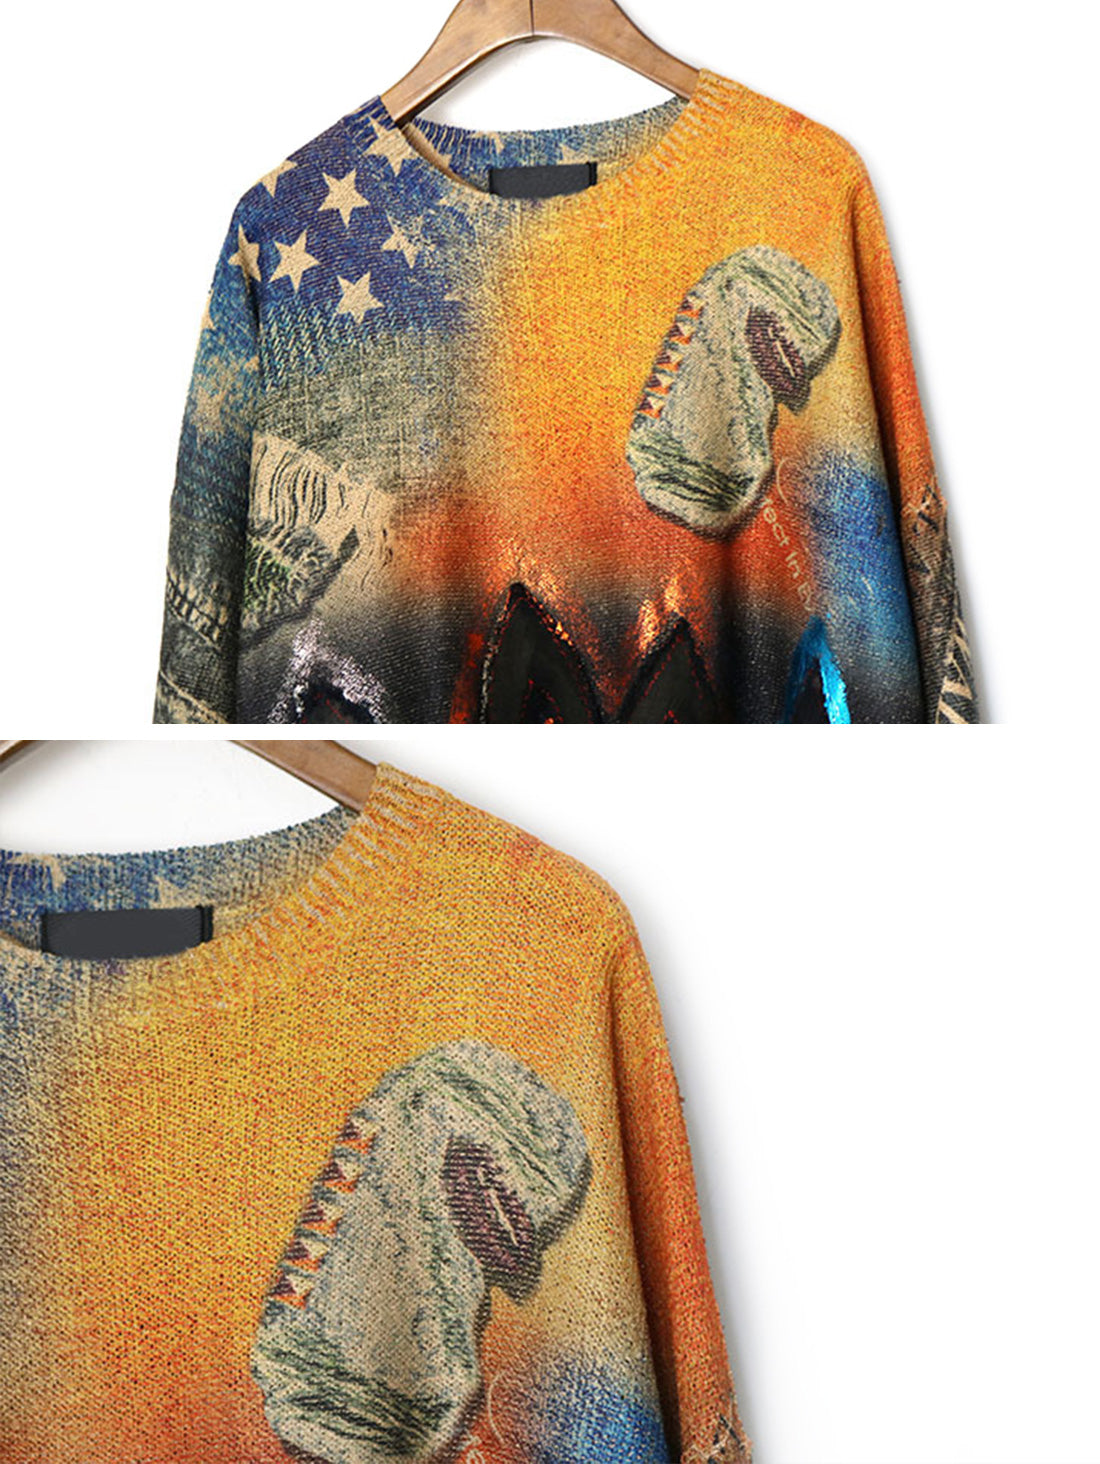 American Day Dream Sweater Top Details 1